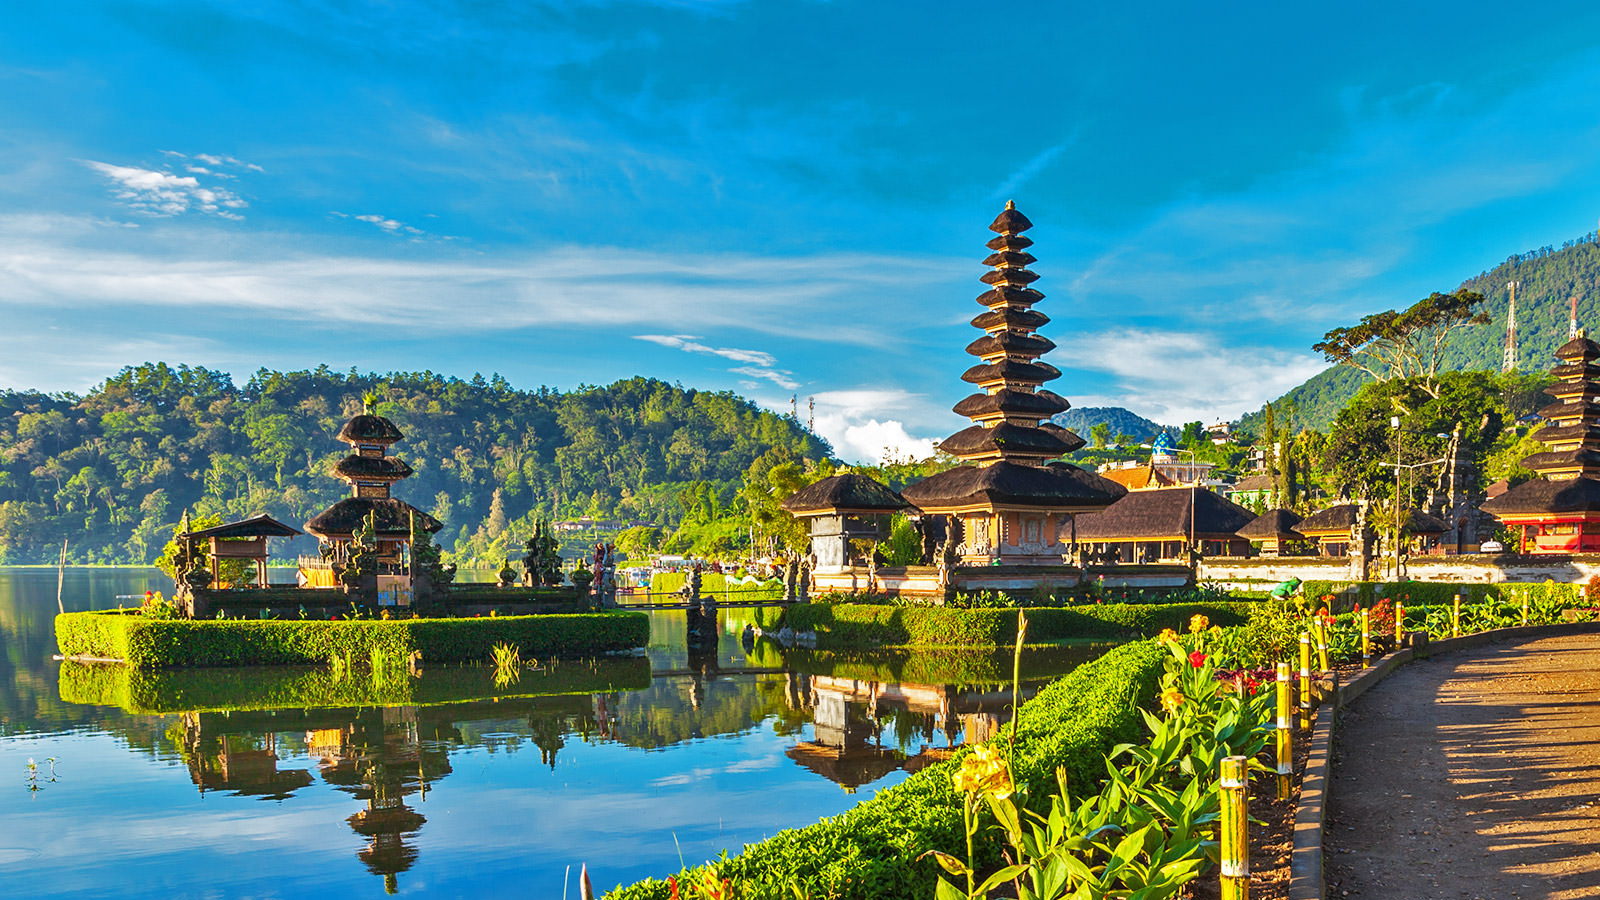 bali-indonesia-Plan-your-next-Trip.jpg